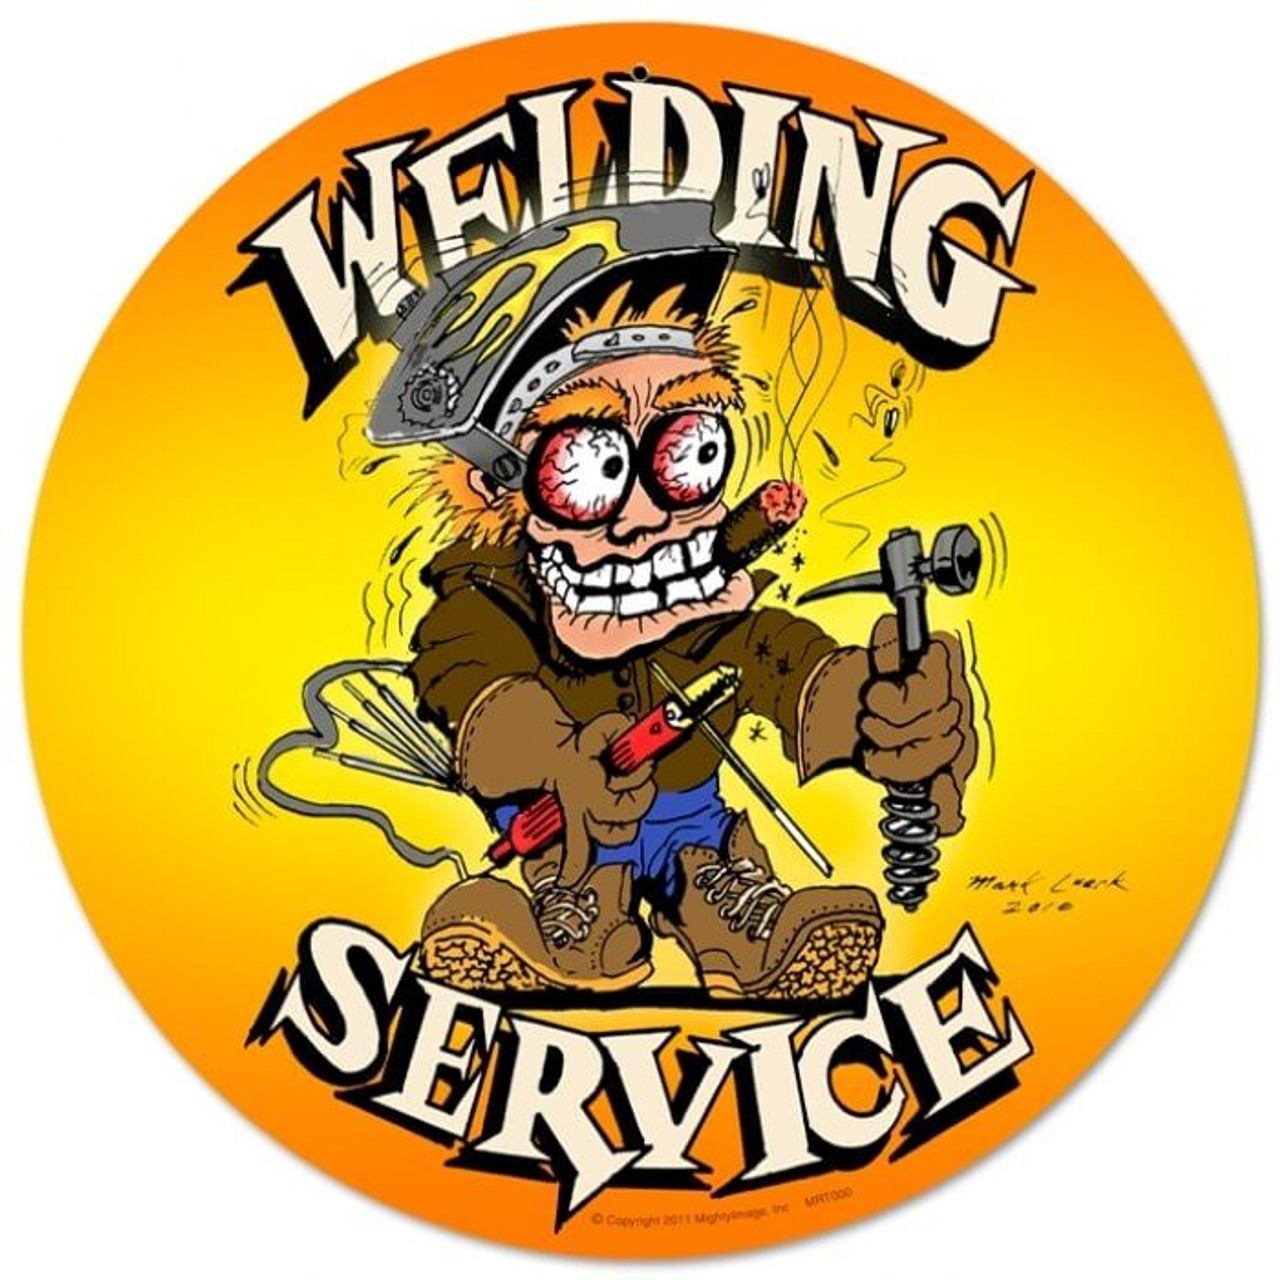 Vintage Welding Service Round Metal Sign 14 x 14 Inches